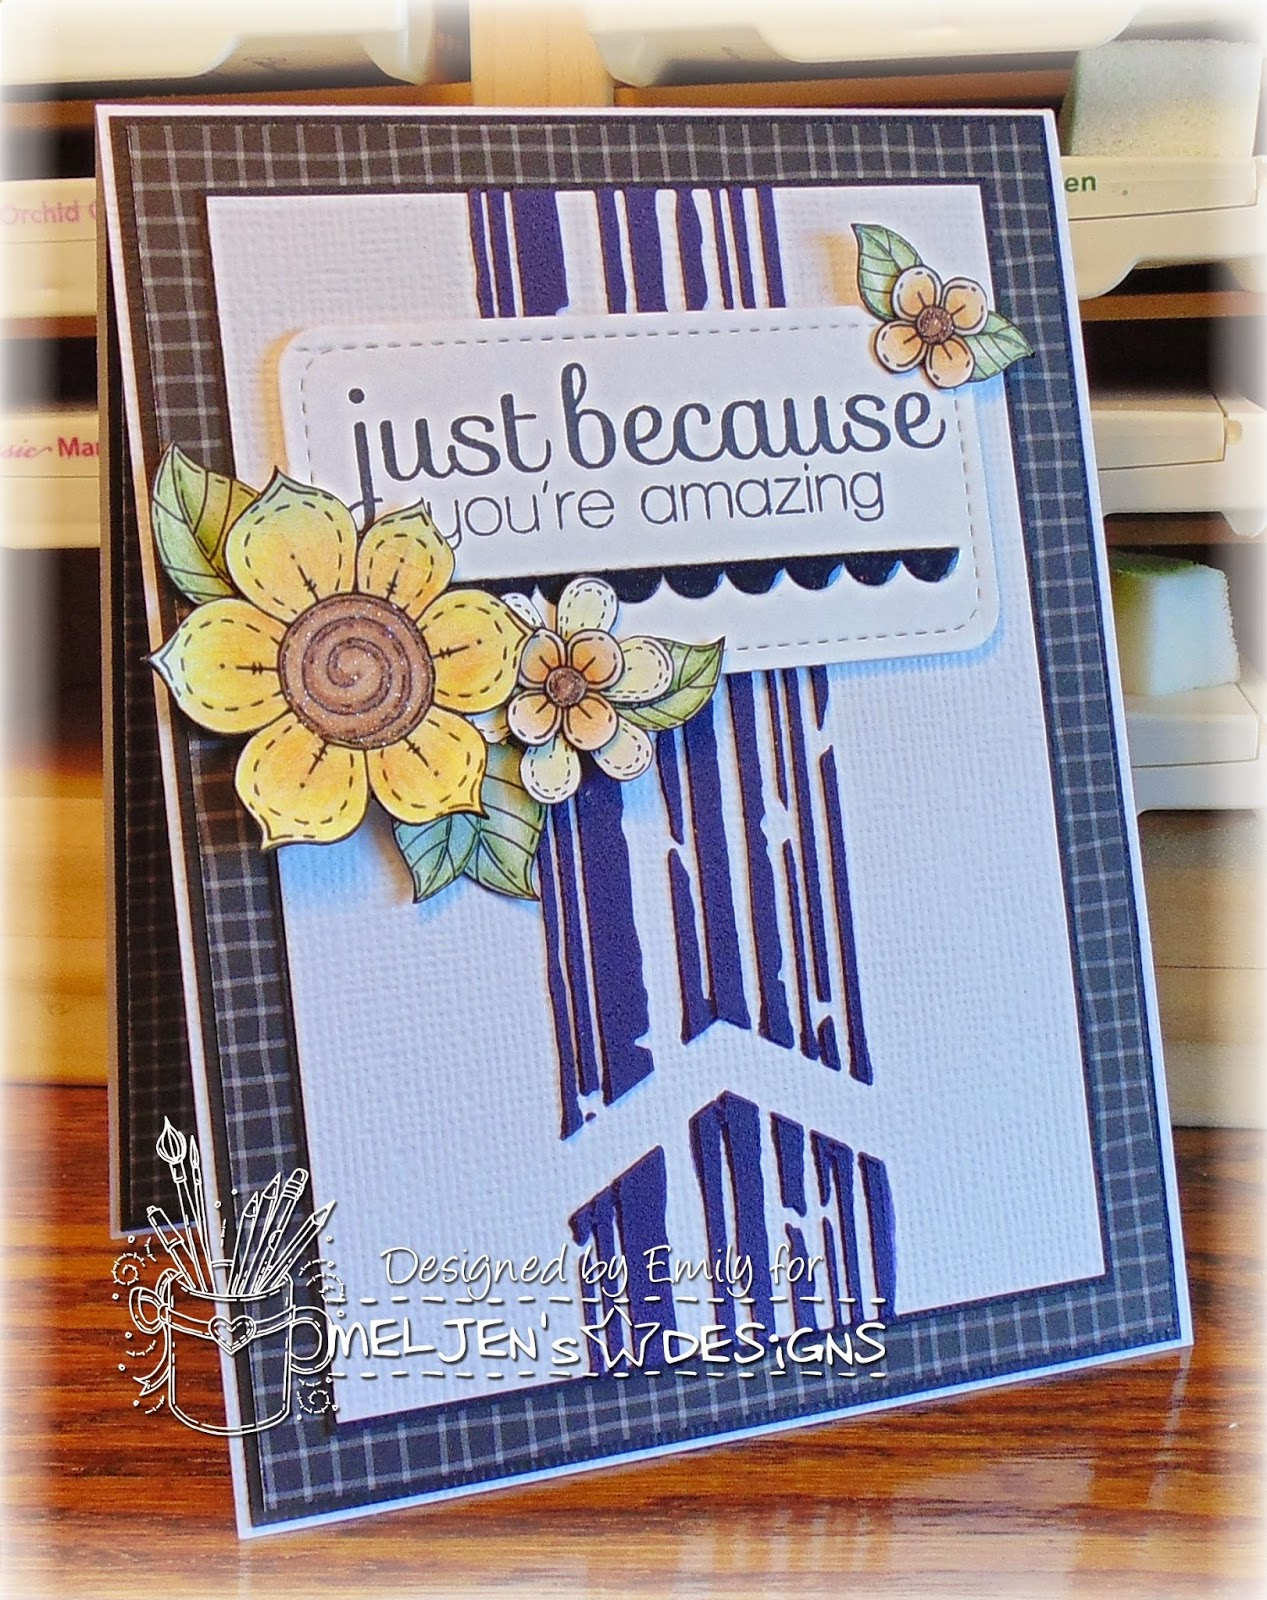 http://scrappysweetcreations.blogspot.ca/2014/05/just-because-youre-amazing.html